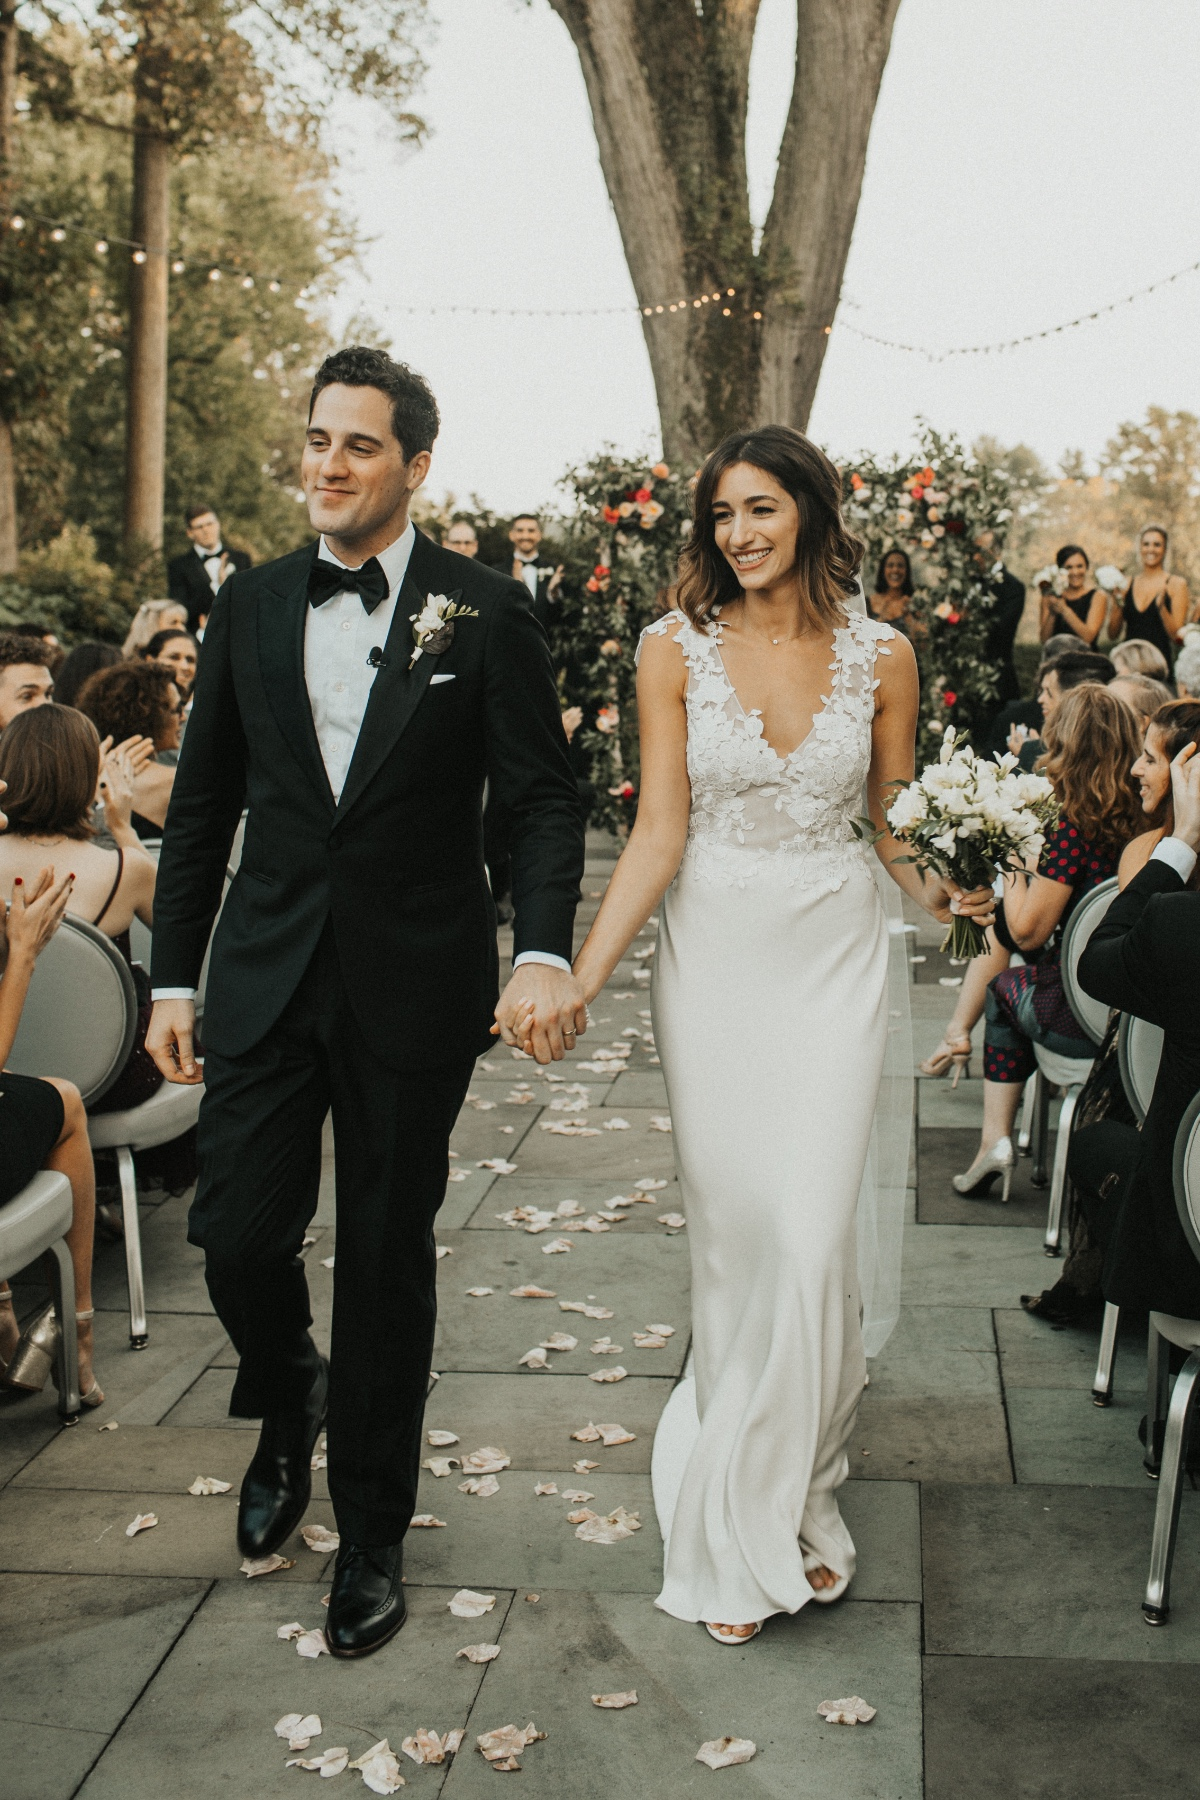 The Sweetest Song for Your First Dance